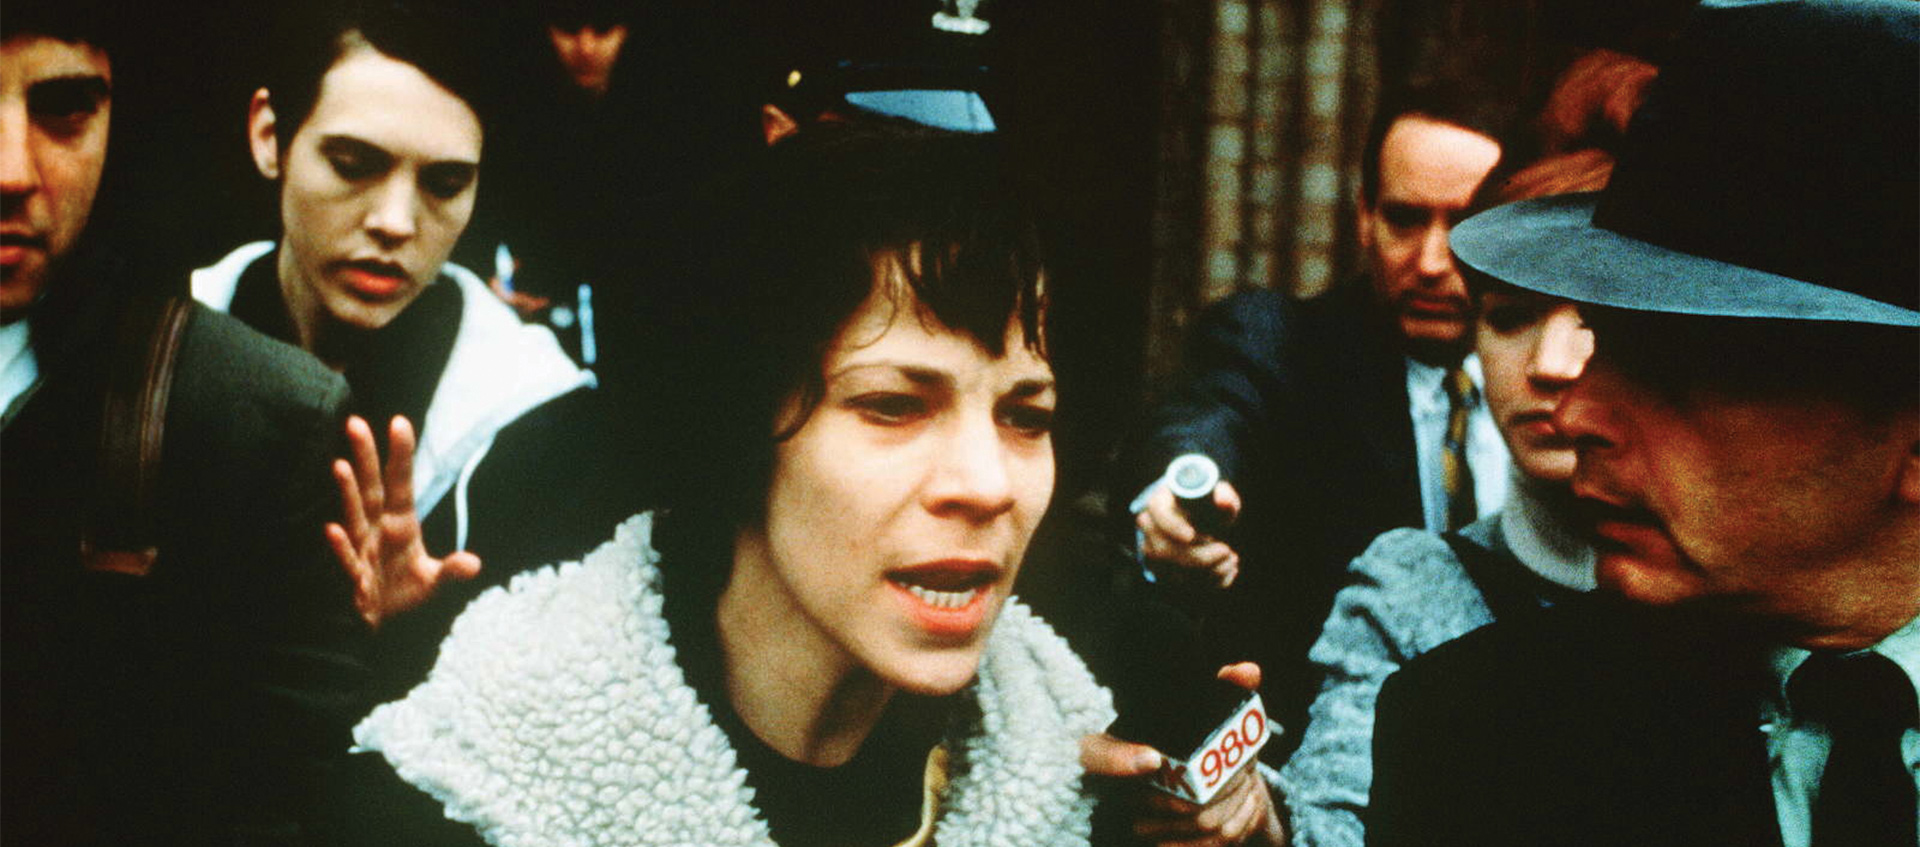 "Valerie Solanas Wants to Be Seen in I SHOT ANDY WARHOL - by Vincent Bec""Valerie's quest for fame is a seeking of validation. If her ideas are spread and accepted, her identity can be too. However, her attempted journey to fame is put entirely into the hands of men. Girodias is her only hope at spreading her words through a published book. Warhol is her only hope at spreading her play. When she goes on television to spread her word she is set up with the show by Danny. The show's host is also a man. Men have taken things from Valerie her whole life from her father's molestation to the johns who sleep with her. Warhol, Girodias, and the talk show host are no different, they use her for their own entertainment and an increase in their own notoriety."""